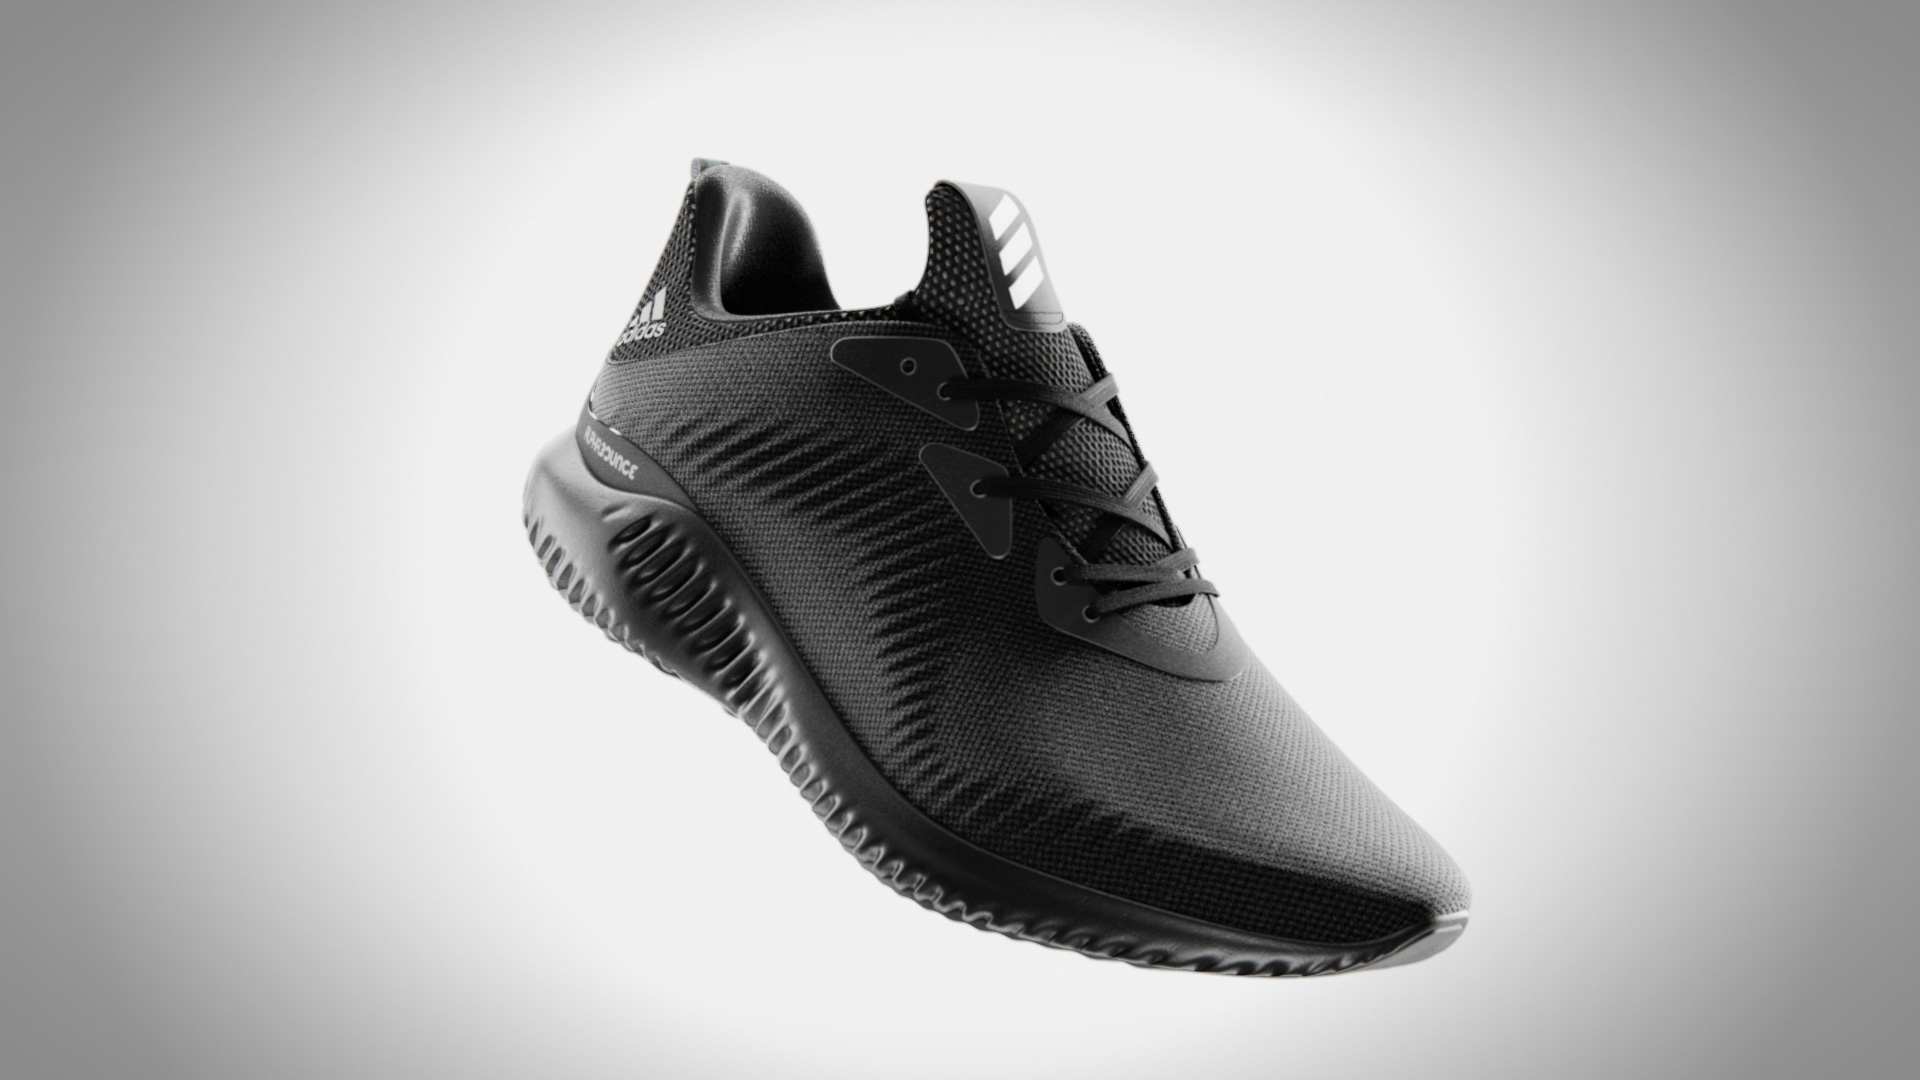 image of black adidas alphabounce shoe